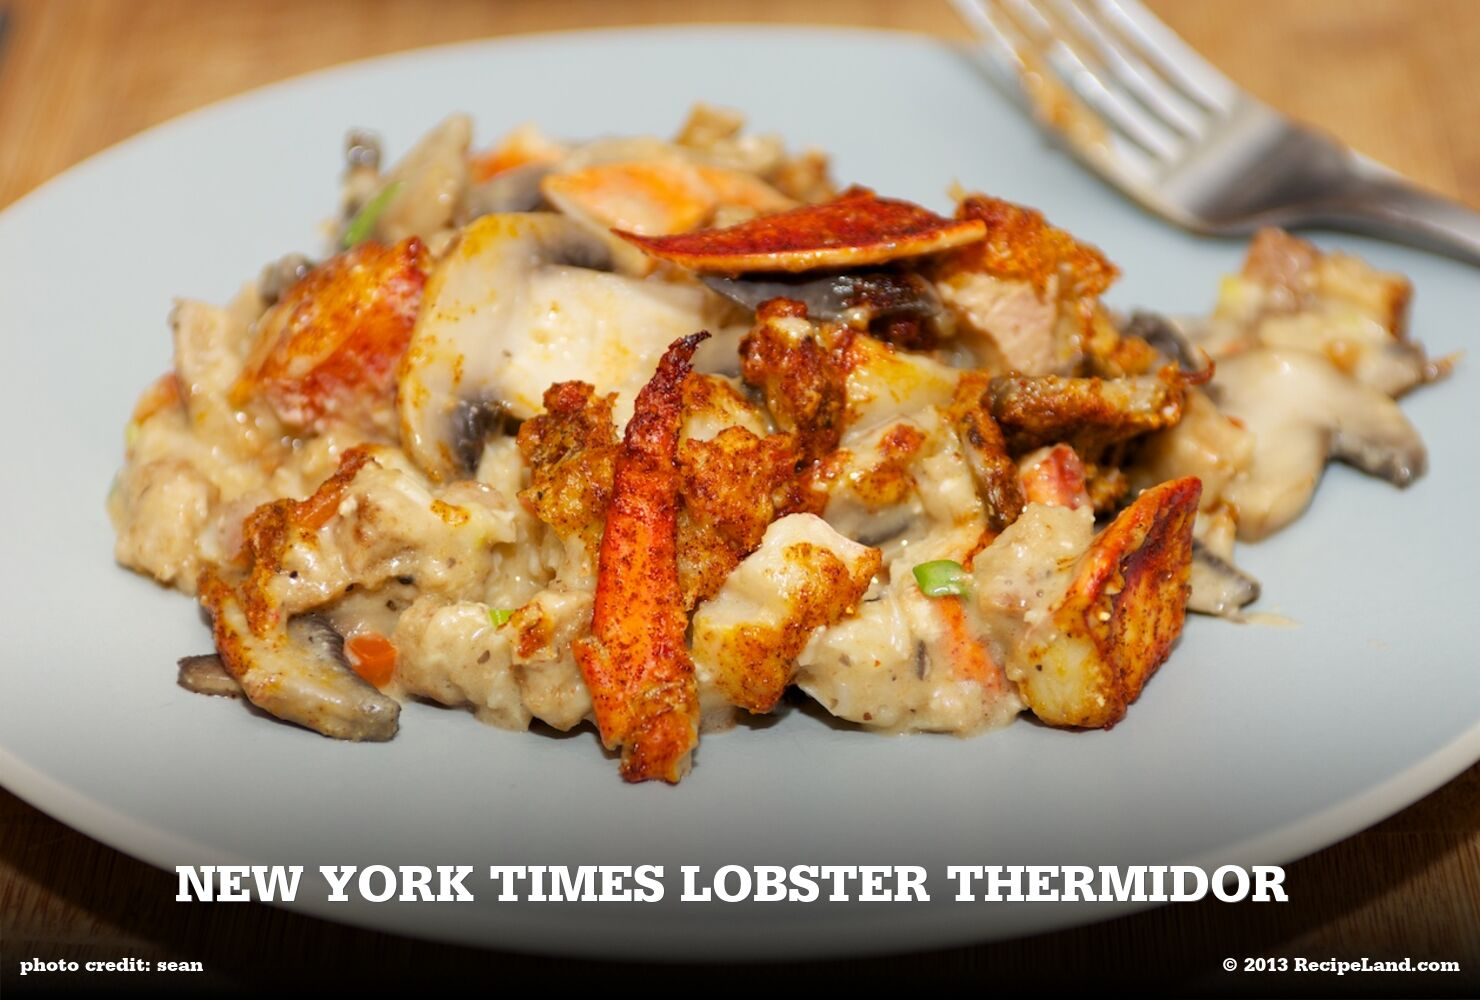 New York Times Lobster Thermidor